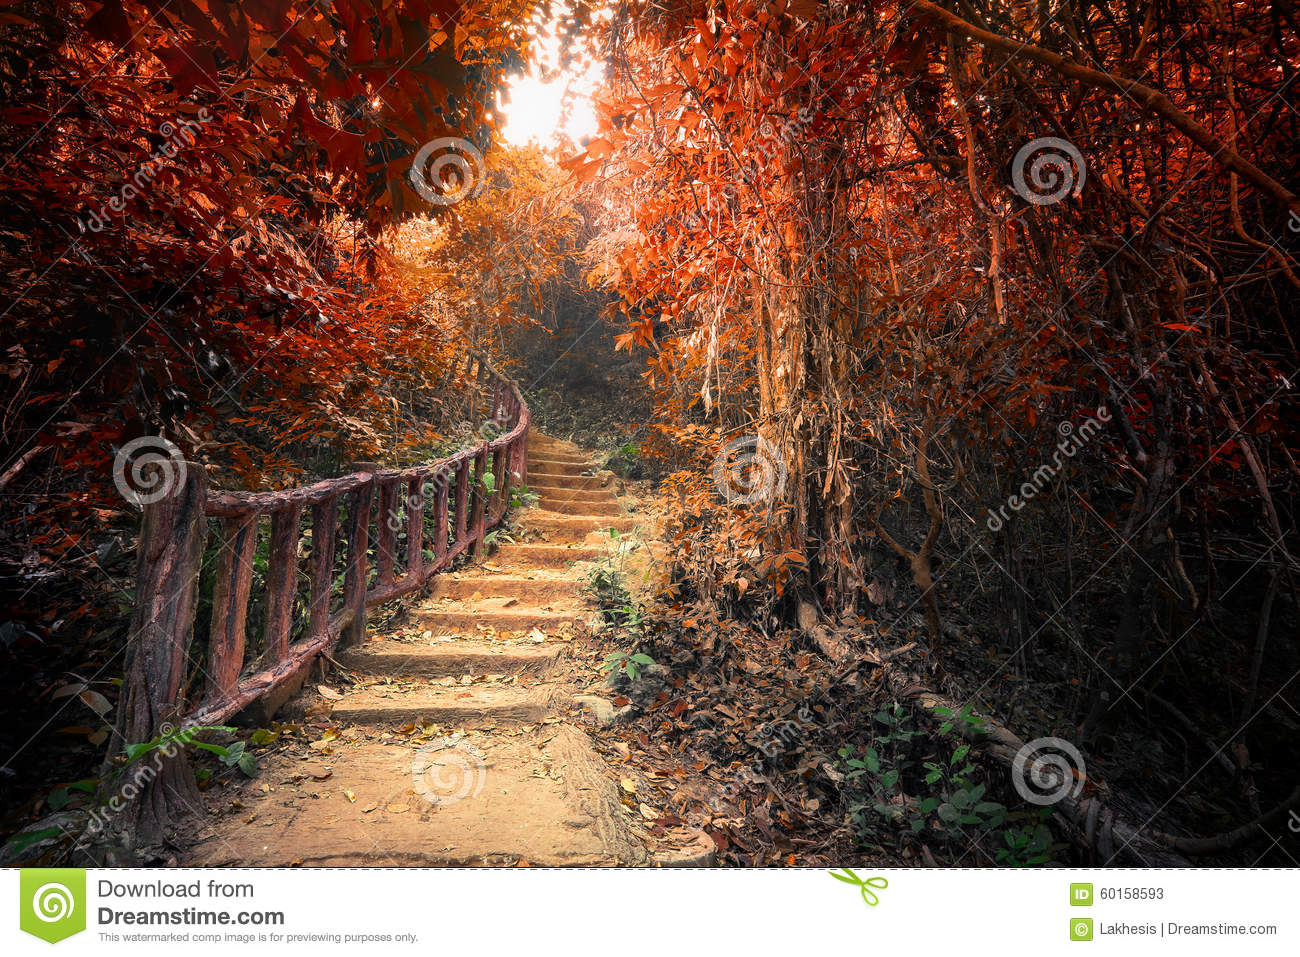 Fall Wallpaper Road Fantasy Autumn Forest With Path Way Through Dense Trees